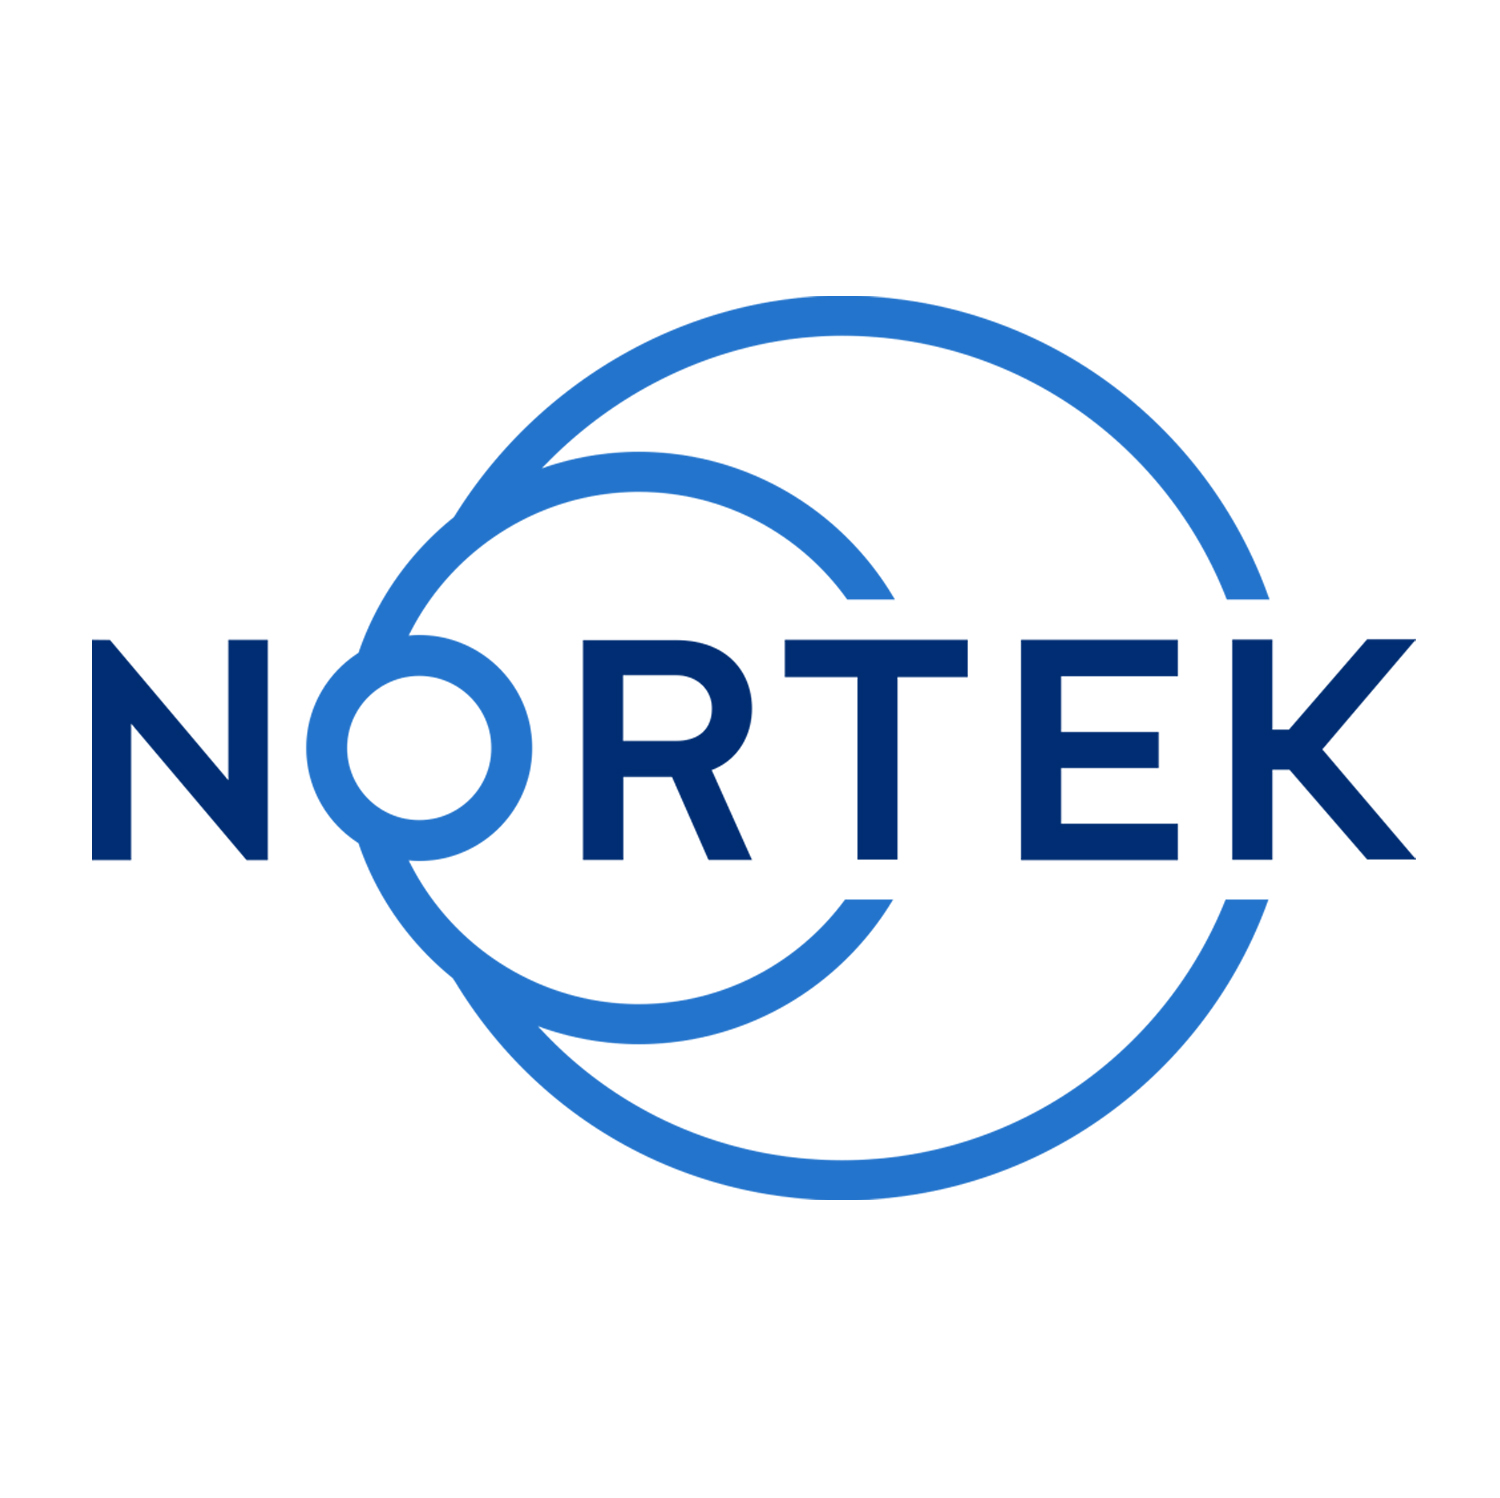 Nortek Underwater Instruments | Water motion